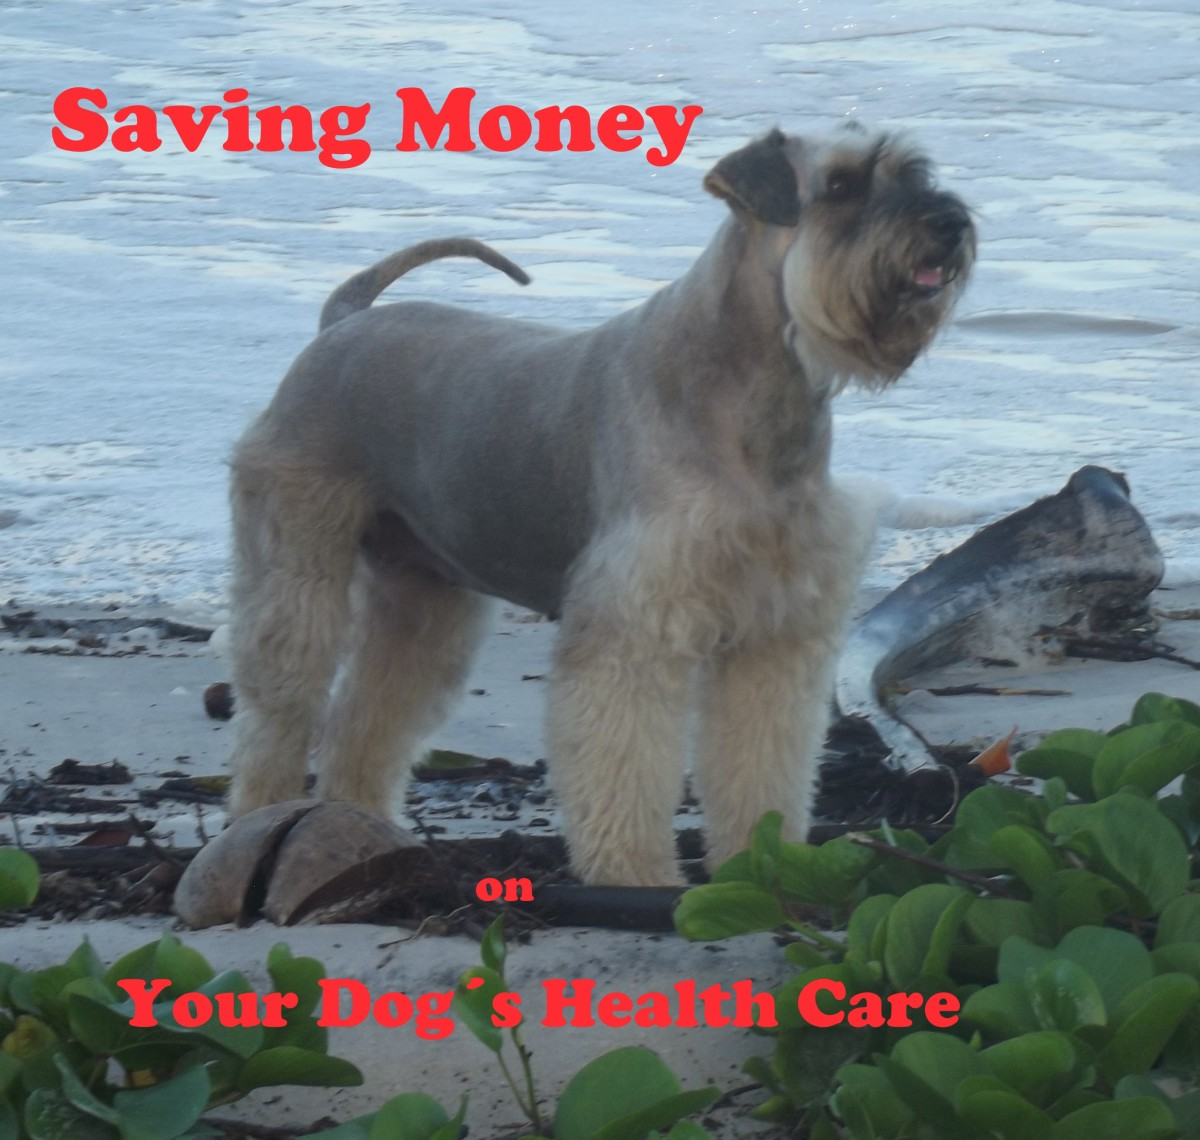 Saving money on your dog´s health care will allow you both more time together.